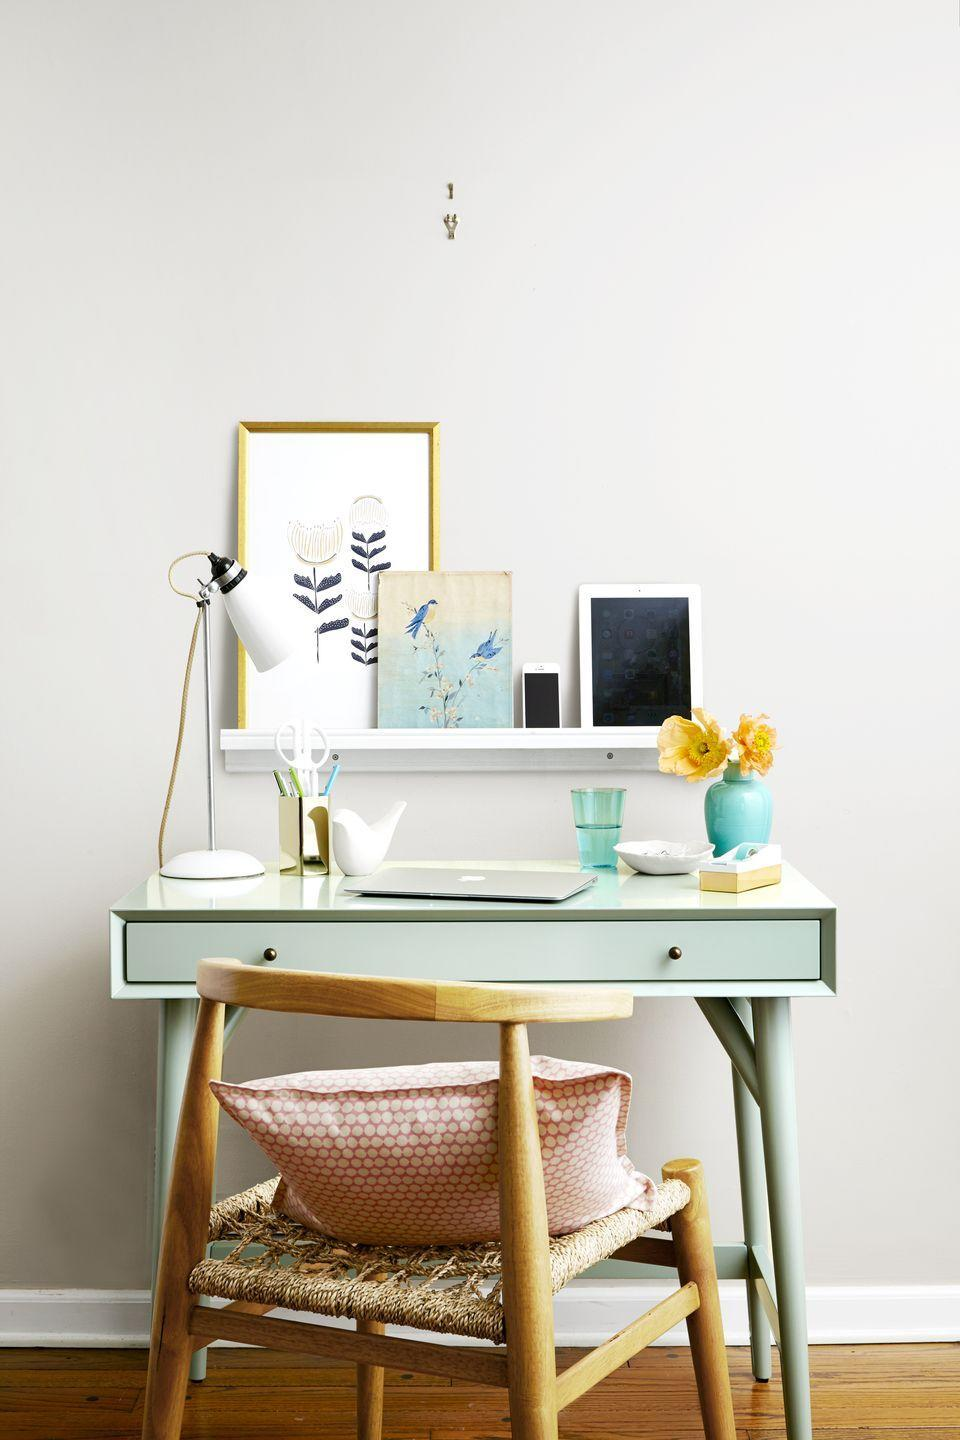 <p>Expand your work space with just a shelf and a few taps of a hammer, making room to store extra tech items or books. It's also a clever way to display artwork; you can easily swap in new frames or layer pieces that you love. </p>